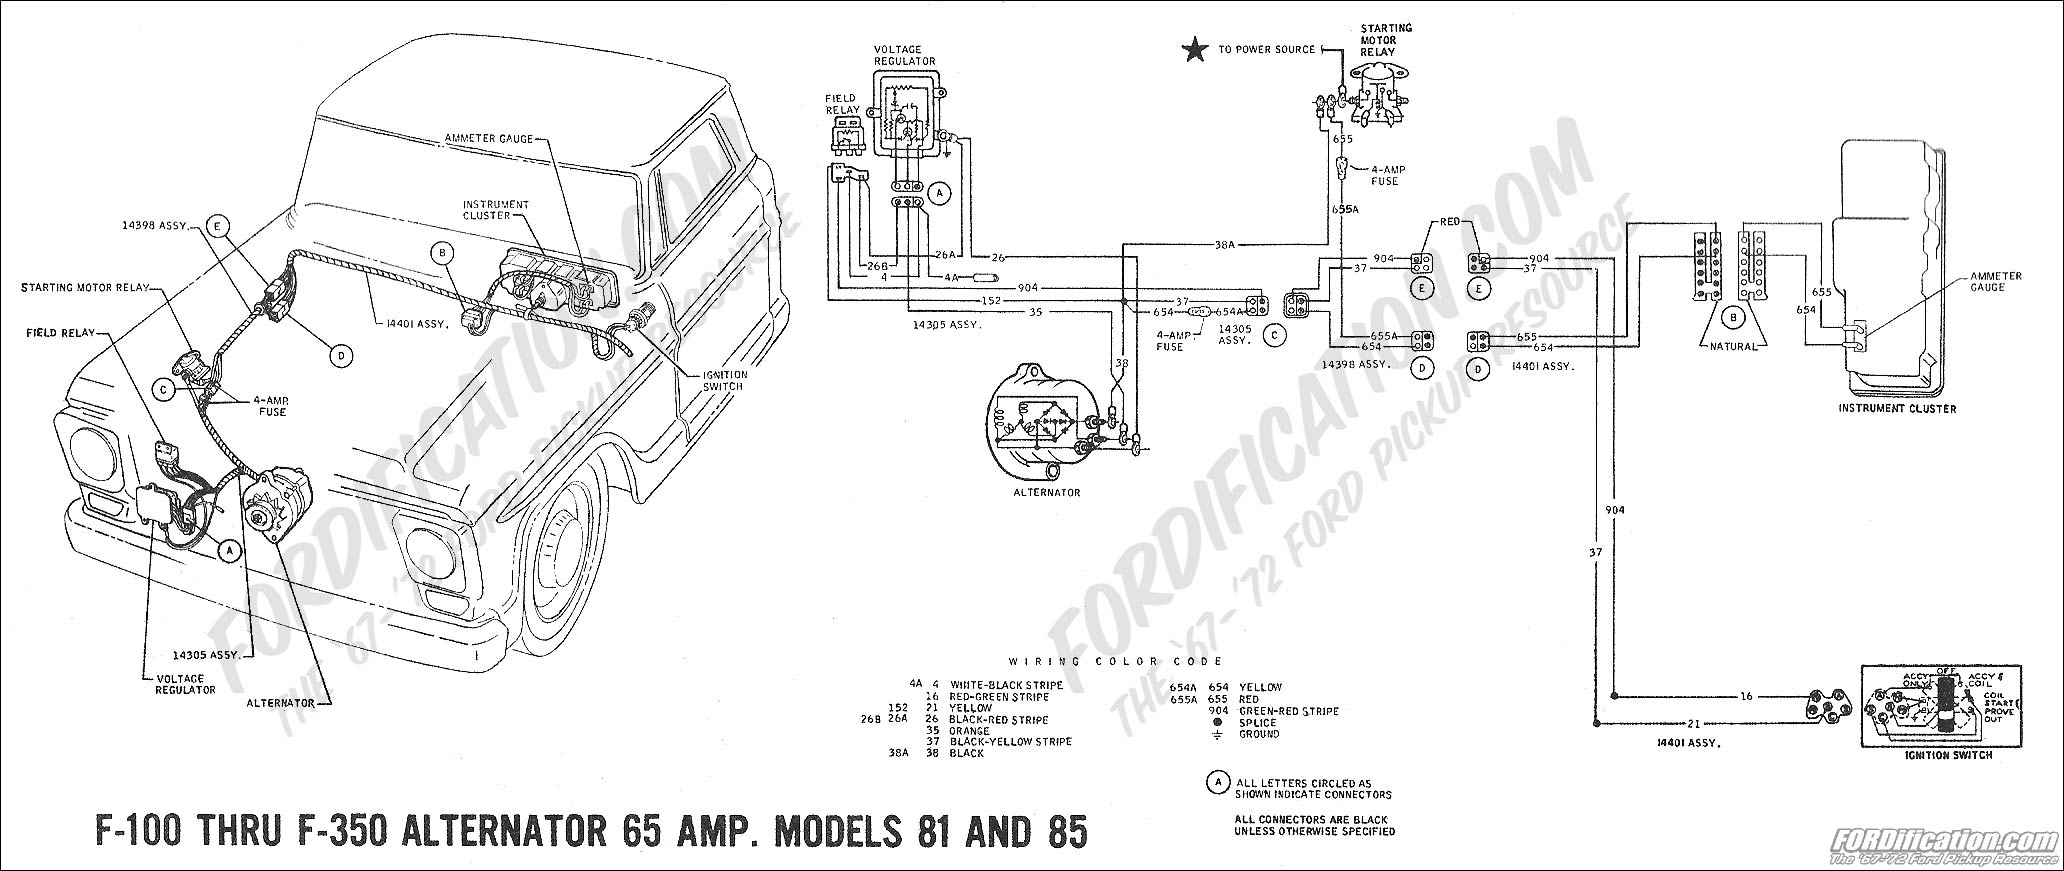 1979 ford truck voltage regulator wiring diagram wiring diagram 1975 ford f100 wiring diagram 86 f150 voltage regulator diagram simple wiring diagram ford amp meter wiring diagram 1979 ford f